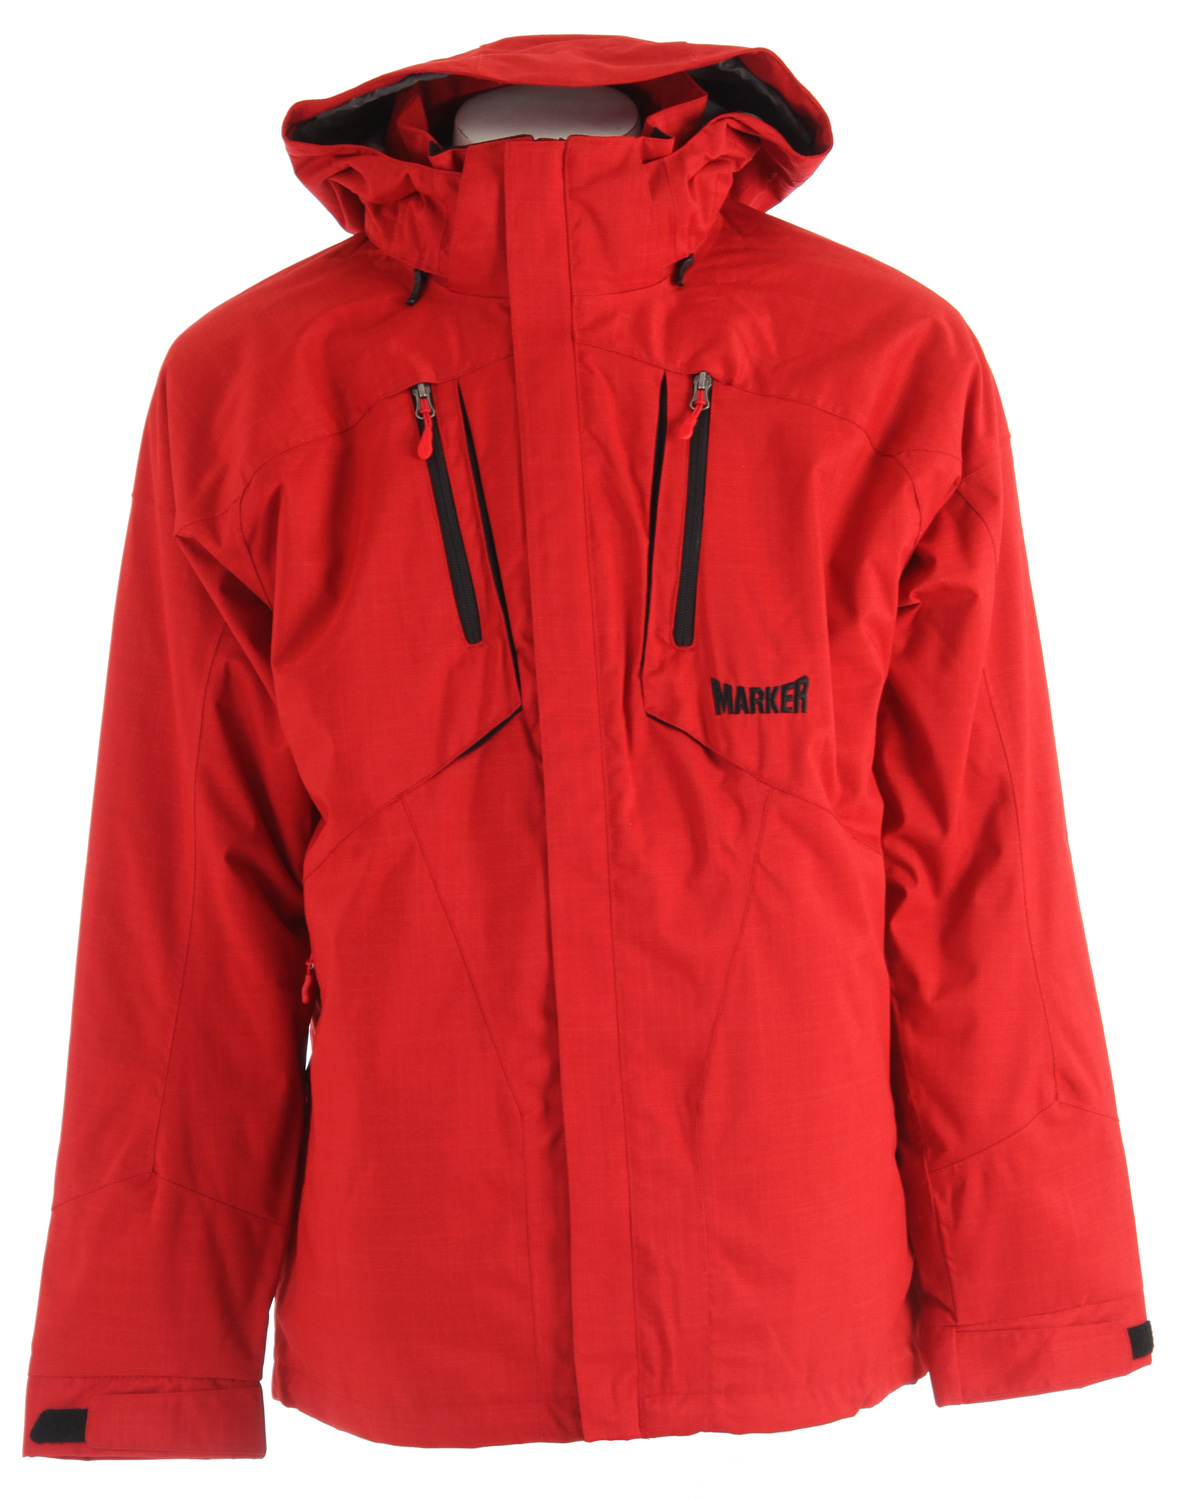 "Ski Key Features of the Marker Cornice 3-In-1 Ski Jacket: 5,000mm Waterproof 5,000g Breathability 100% polyester, tonal texture, 5,000mm breathability/waterproofness, windproof Embossed taffeta lining, brushed tricot, power mesh CB Length 32"" Adjustable cuffs with Velcro closure Articulated elbows Brushed tricot lined pockets Center front draft flap Chest pocket Fully seam sealed Hand pockets Media pocket One handed drawcord closure at bottom hem Raglan sleeve Underarm vents with YKK Zippers & power mesh backing YKK Zippers Zip off storm hood - $223.95"